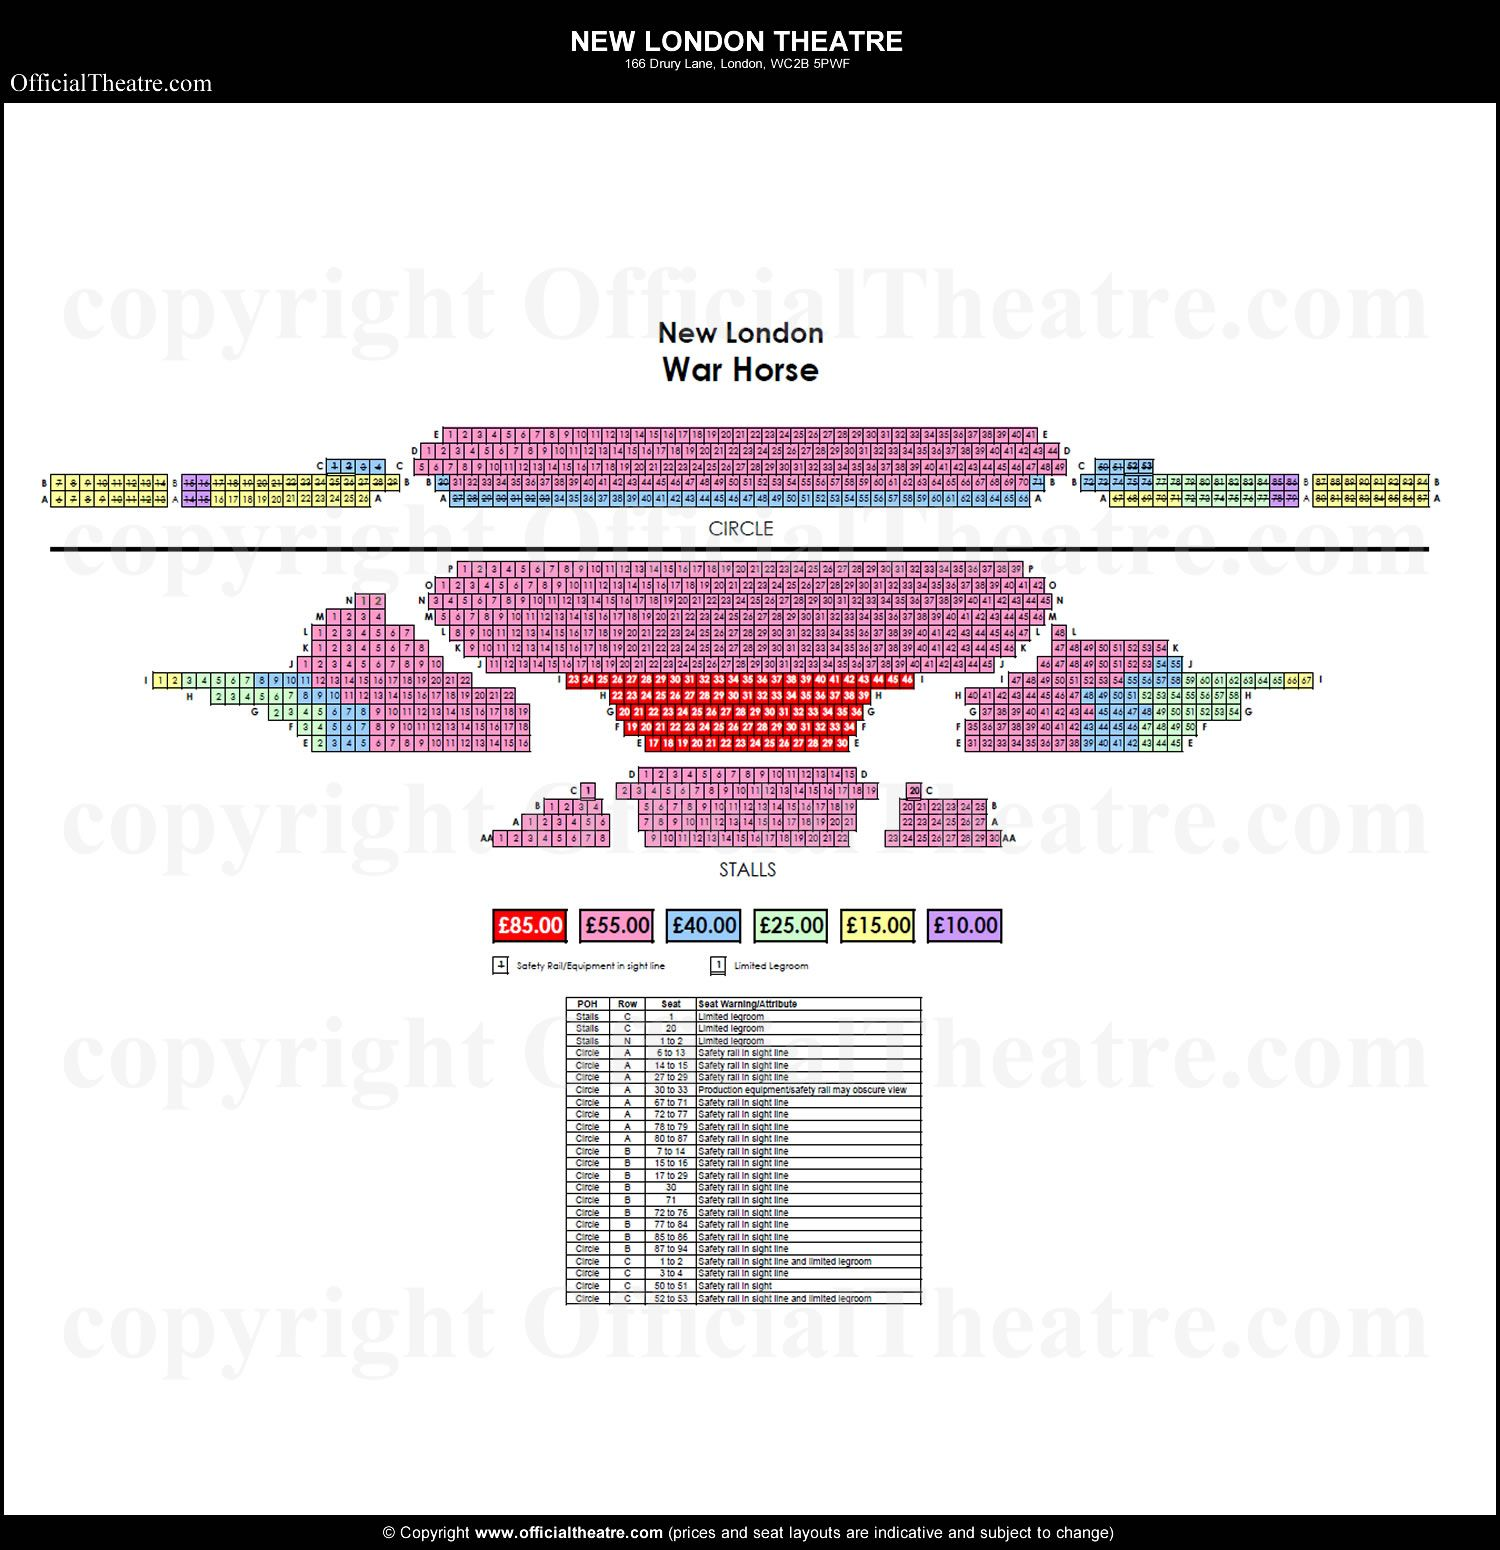 New London Theatre Seating Plan And Price Guide London Theatre London New London